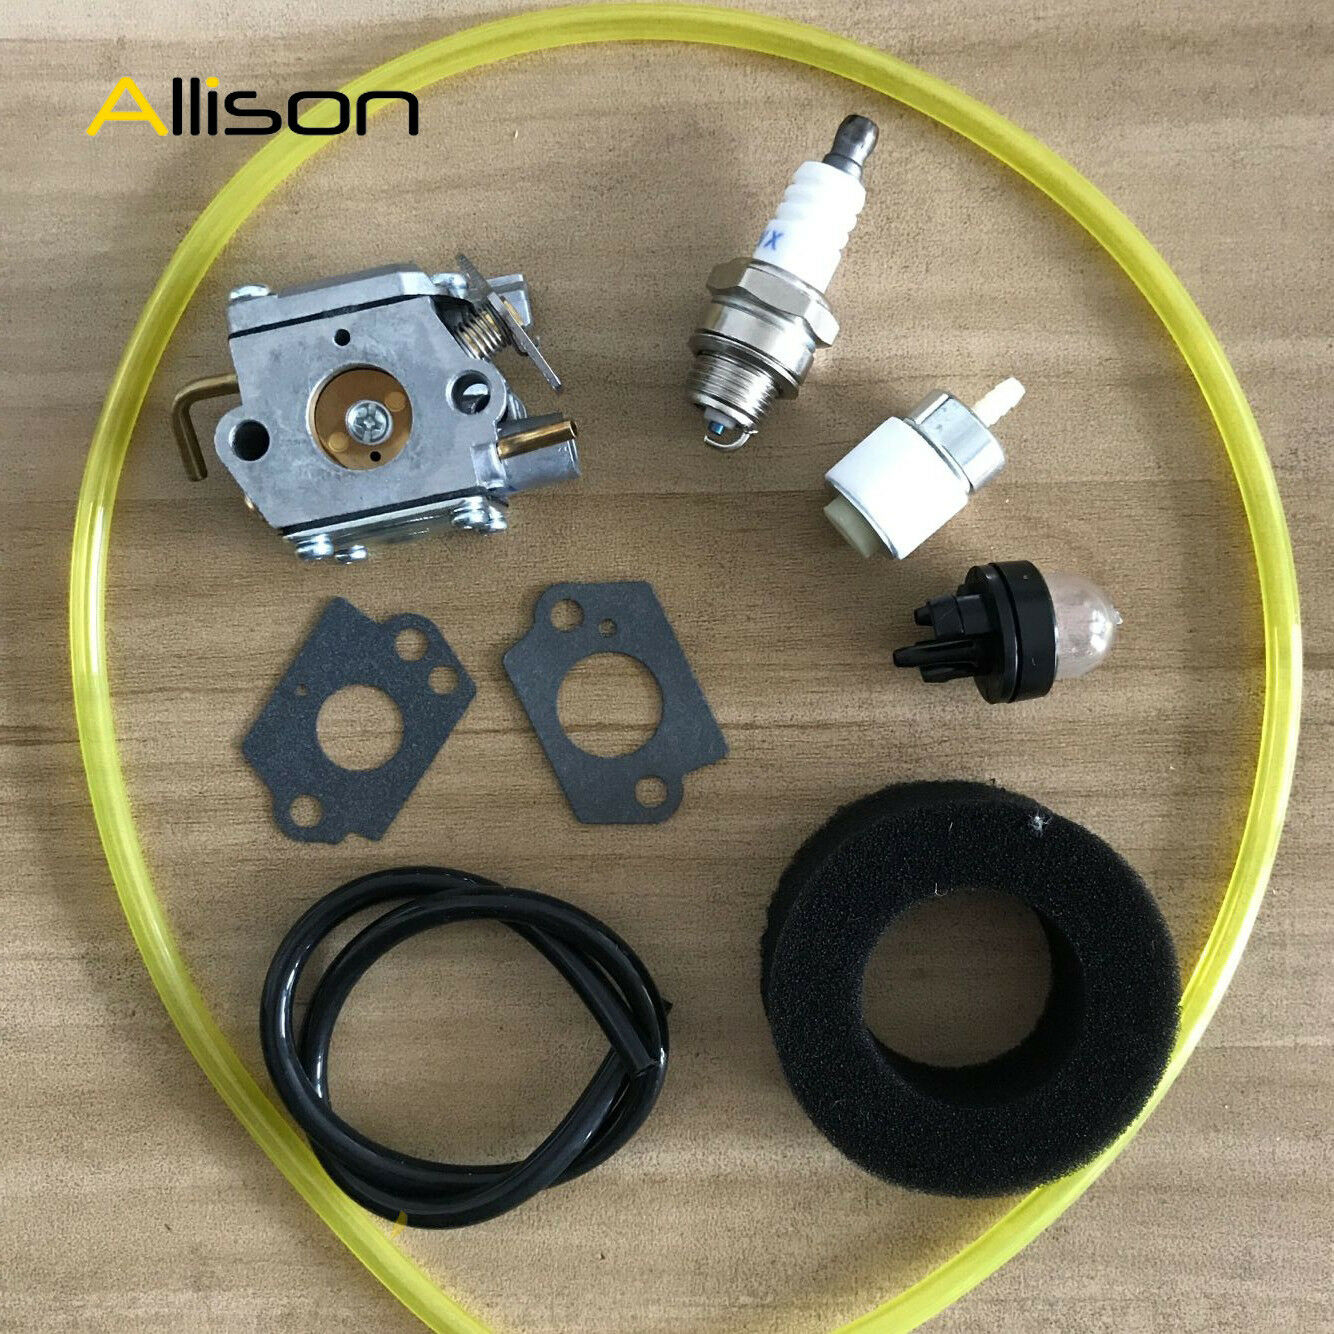 Carburetor 753 04408 With Fuel Line Mtd Oem Trimmer Or Lawn Mower Genuine Troybilt 7531225 X3 Norton Secured Powered By Verisign